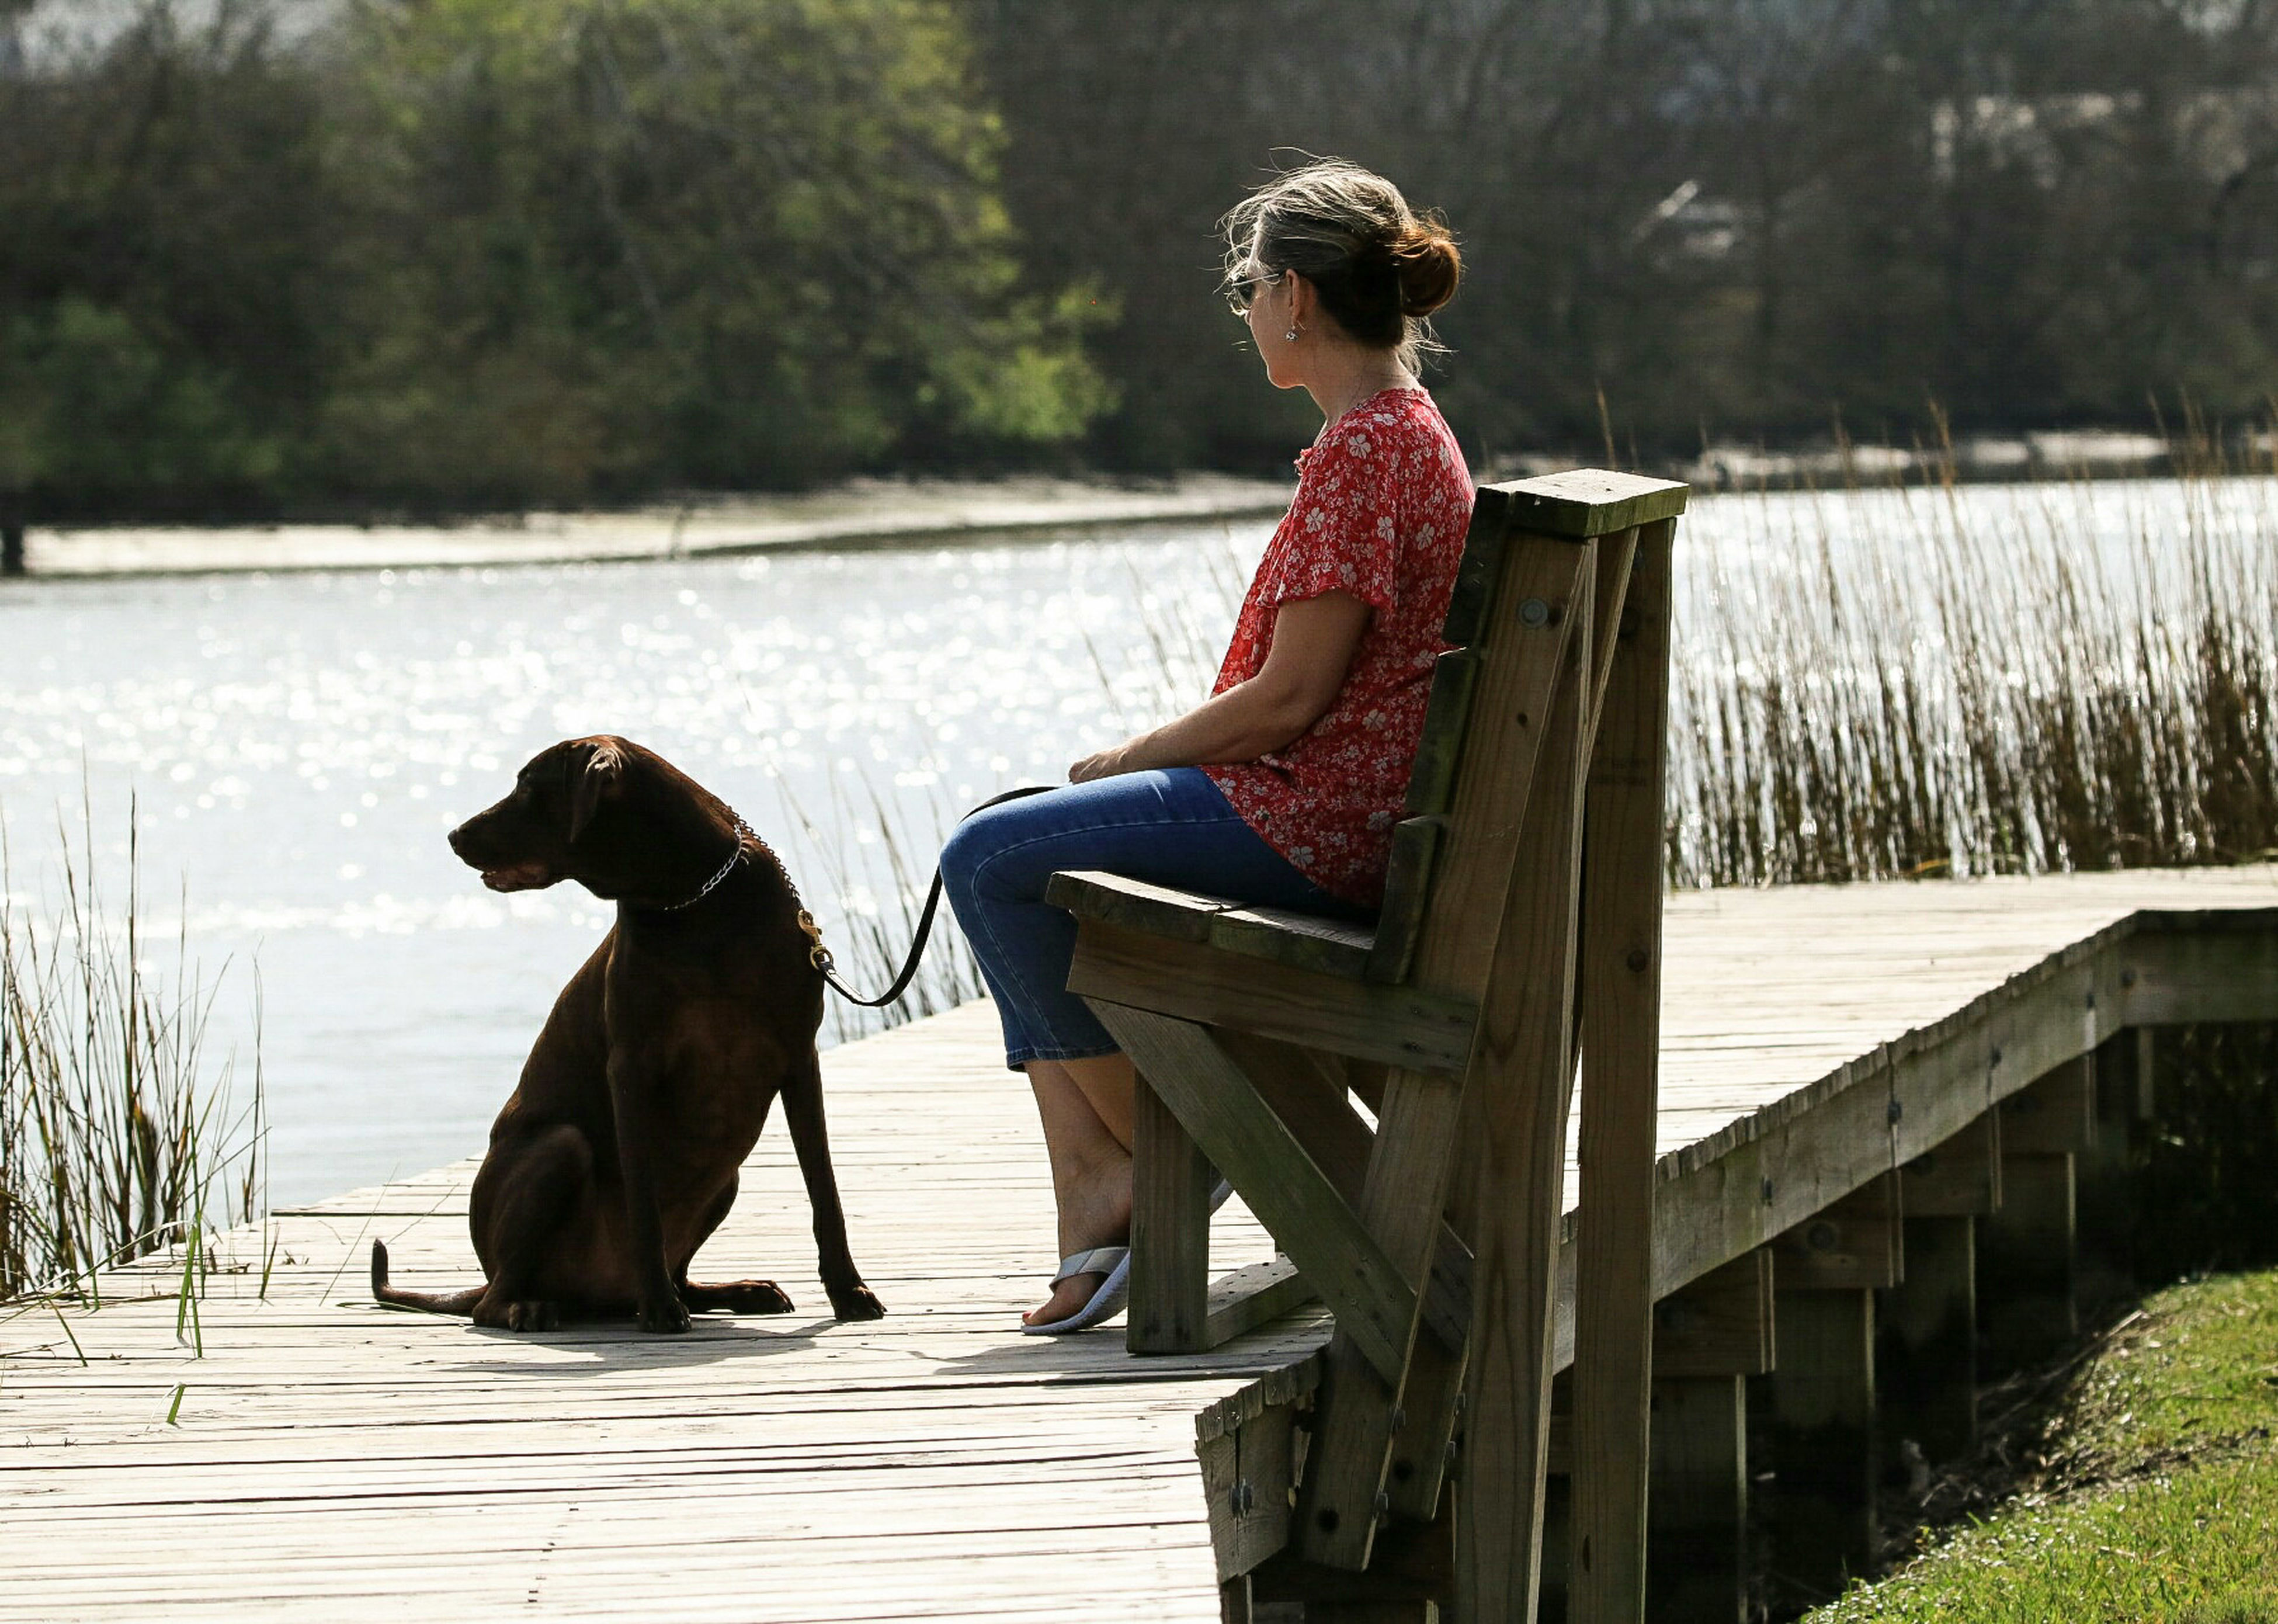 rear view, dog, one animal, pets, sitting, lake, water, animal themes, one woman only, one person, relaxation, people, outdoors, domestic animals, only women, day, leisure activity, adult, adults only, beach, nature, one young woman only, young adult, mammal